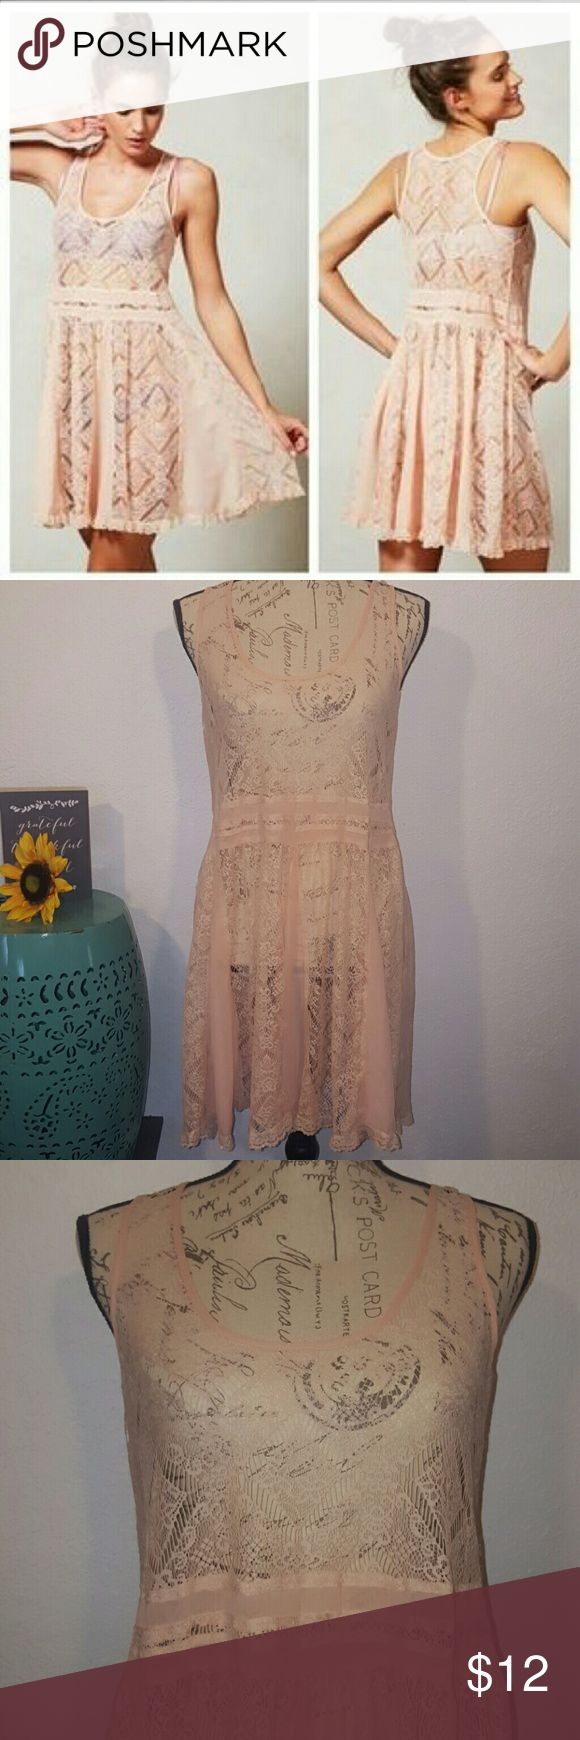 🎉HP🎉 E by Eloise Anthropology Lace Dress Peach lace dress, great layering piece.  Size medium E by Eloise Dresses Mini